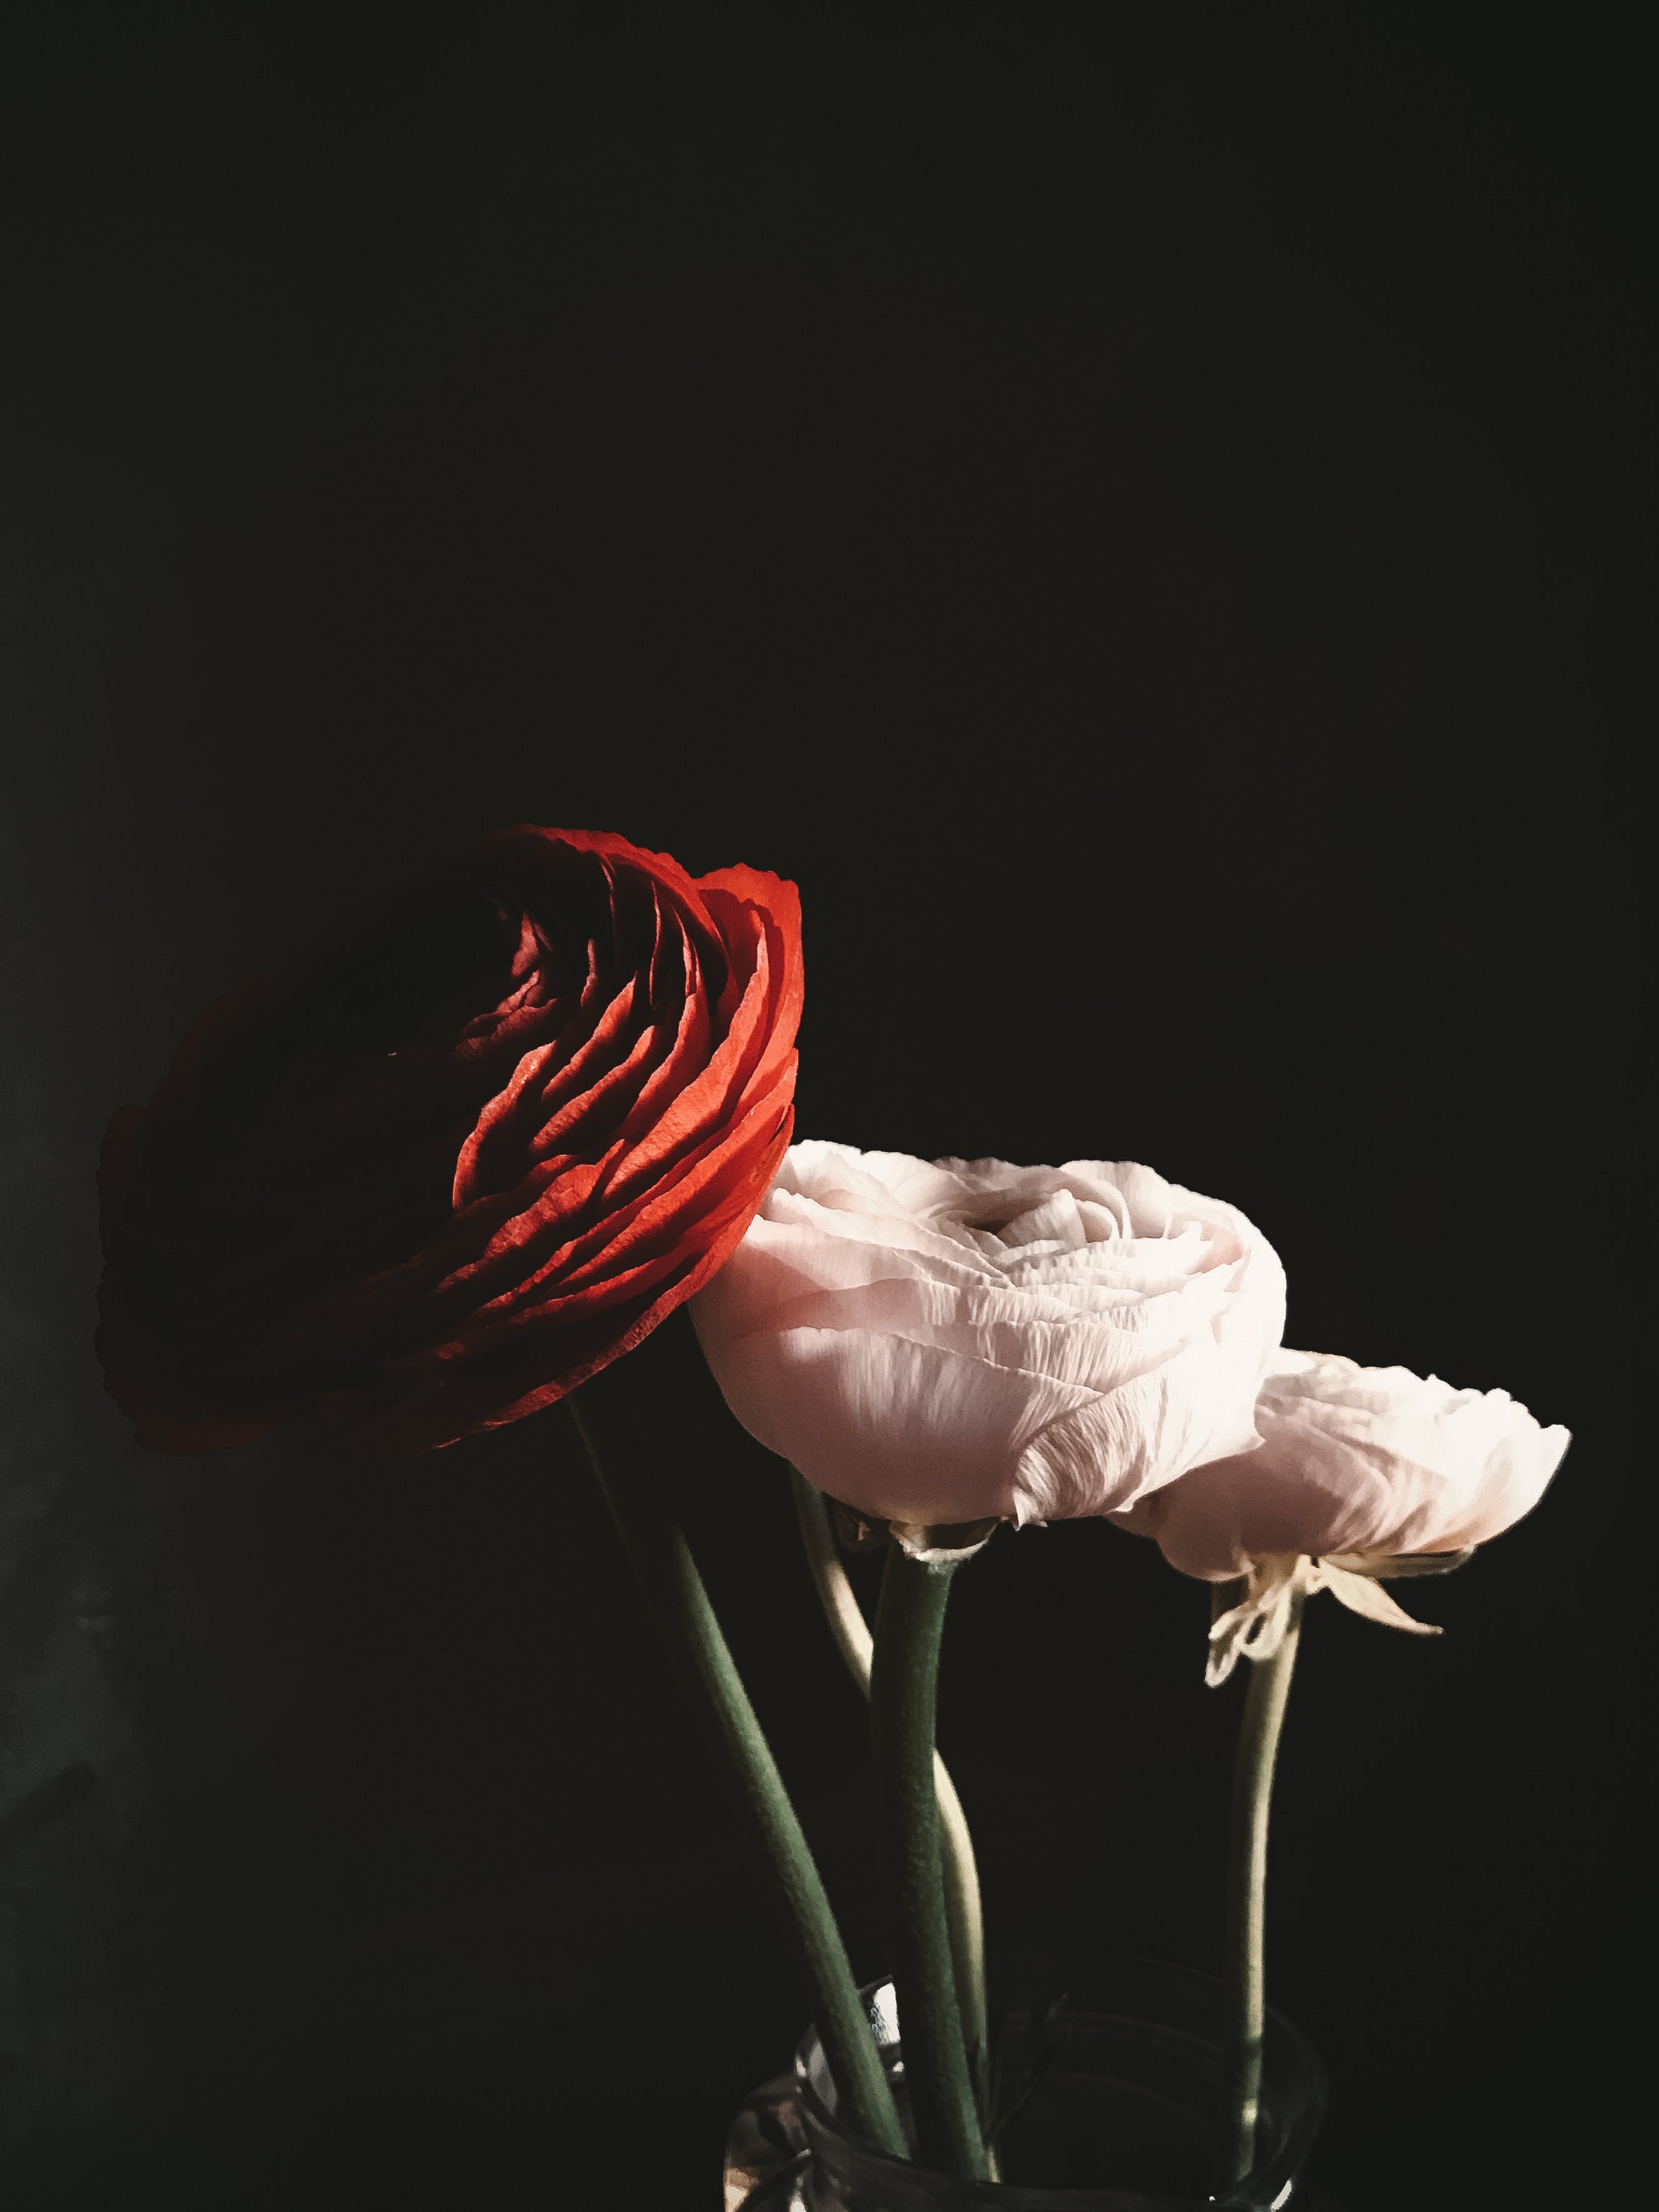 Red and White Rose Flowers on Black Background